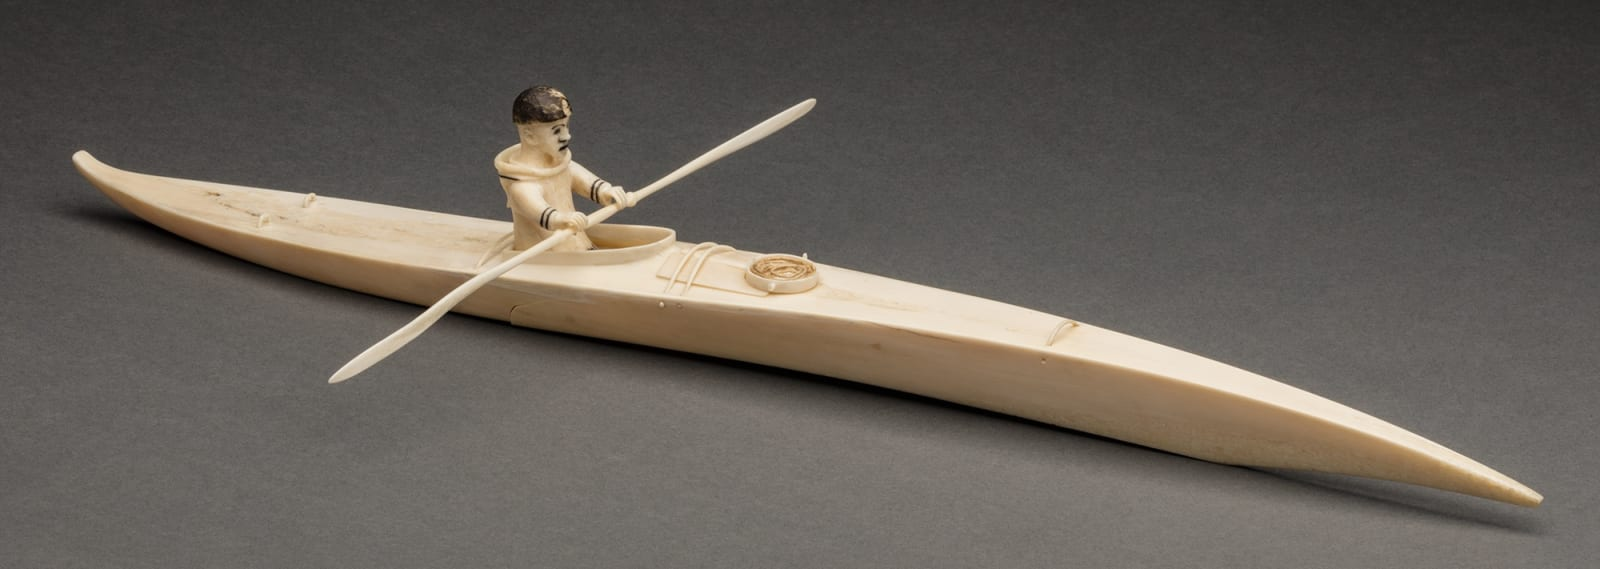 Lot 32 Possibly SHEOKJUK OQUTAQ (1920-1982) m., KIMMIRUT/KINNGAIT (LAKE HARBOUR/CAPE DORSET) Kayaker, c. mid 1930s to 1940s ivory, rope, black ink and inlay, 3 x 18.5 x 9.5 in (7.6 x 47 x 24.1 cm) Estimate: $1,800 — $2,800 Price realized: $1,800